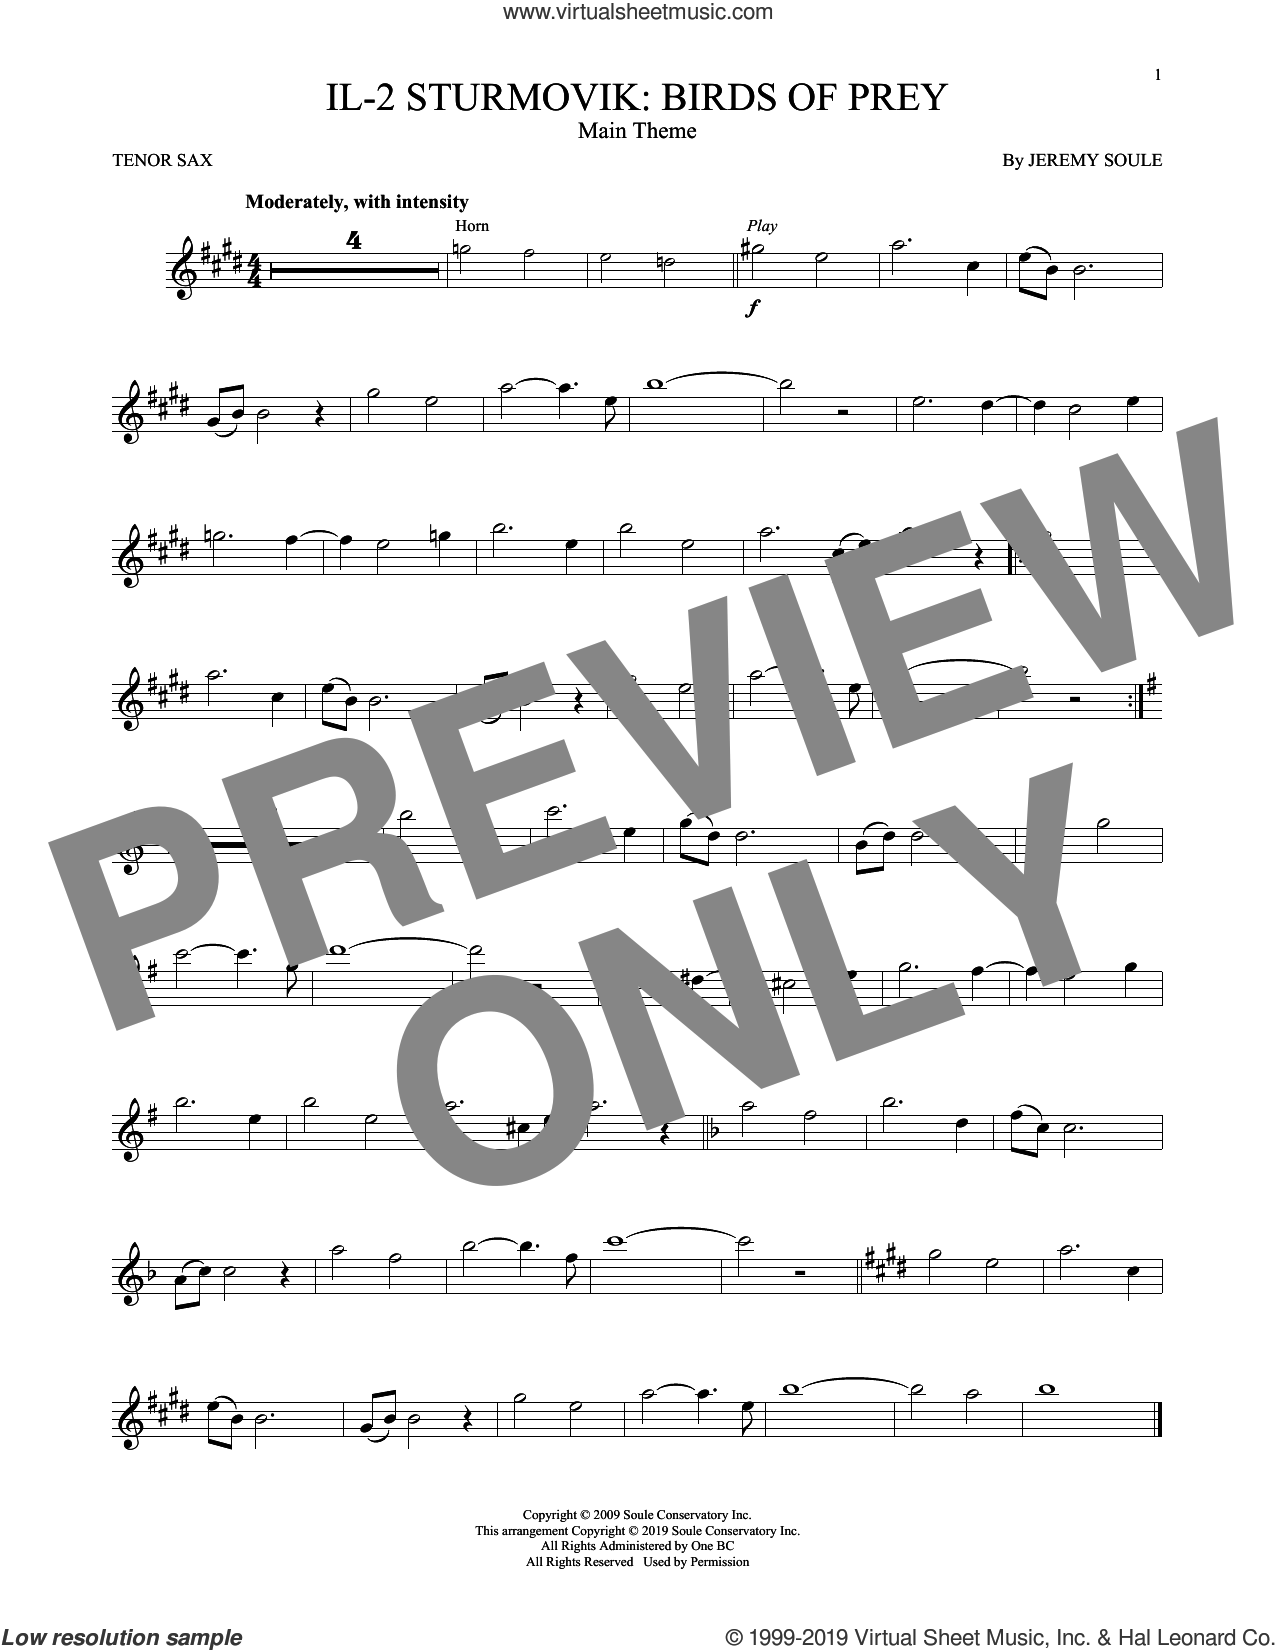 IL-2 Sturmovik: Birds of Prey - Main Theme sheet music for tenor saxophone solo by Jeremy Soule, intermediate skill level